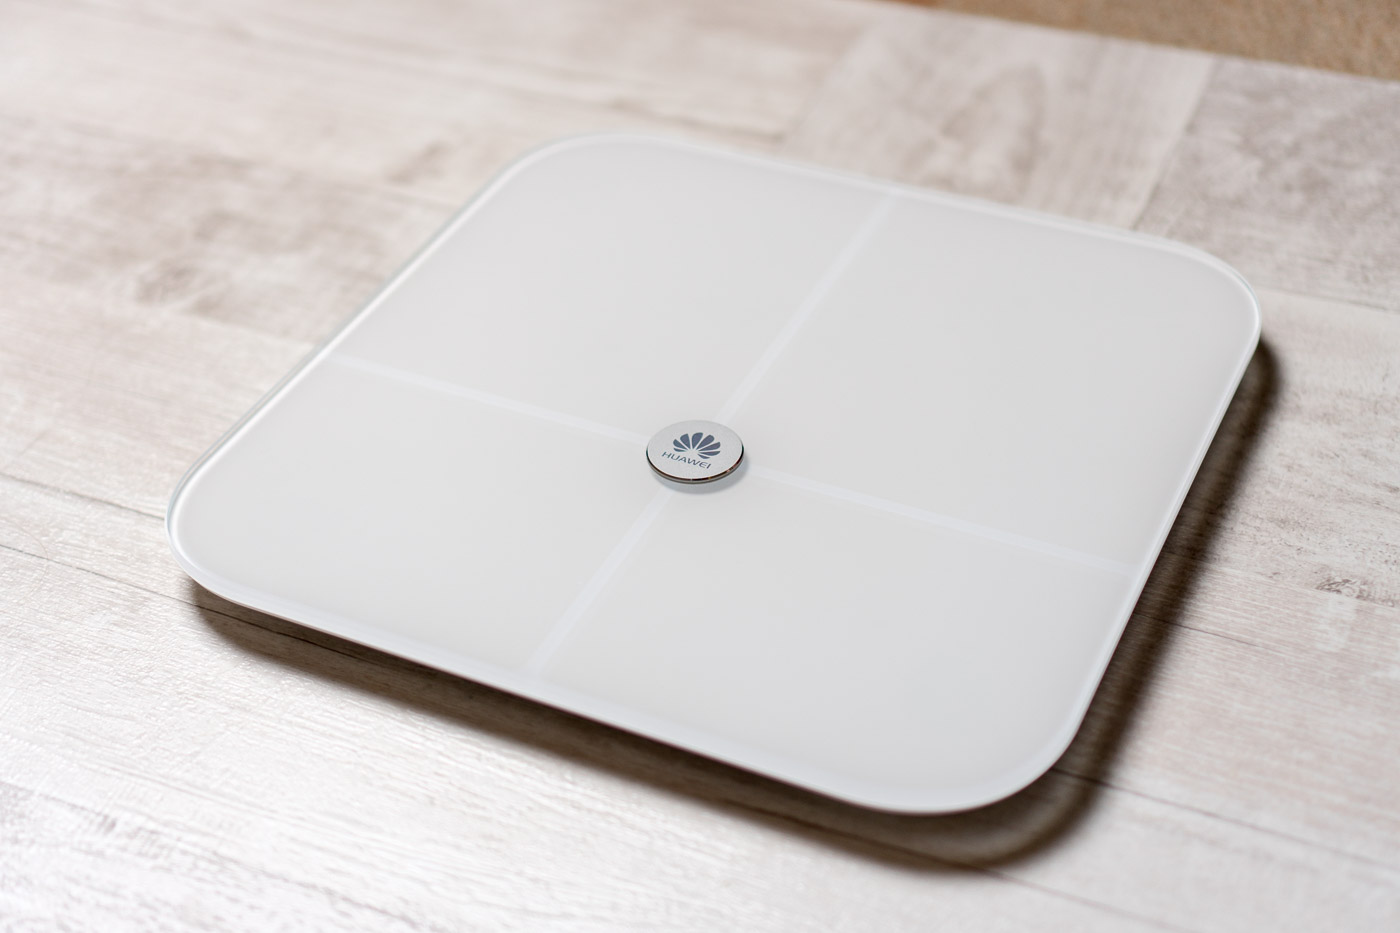 waha huawei smart scale spidersweb